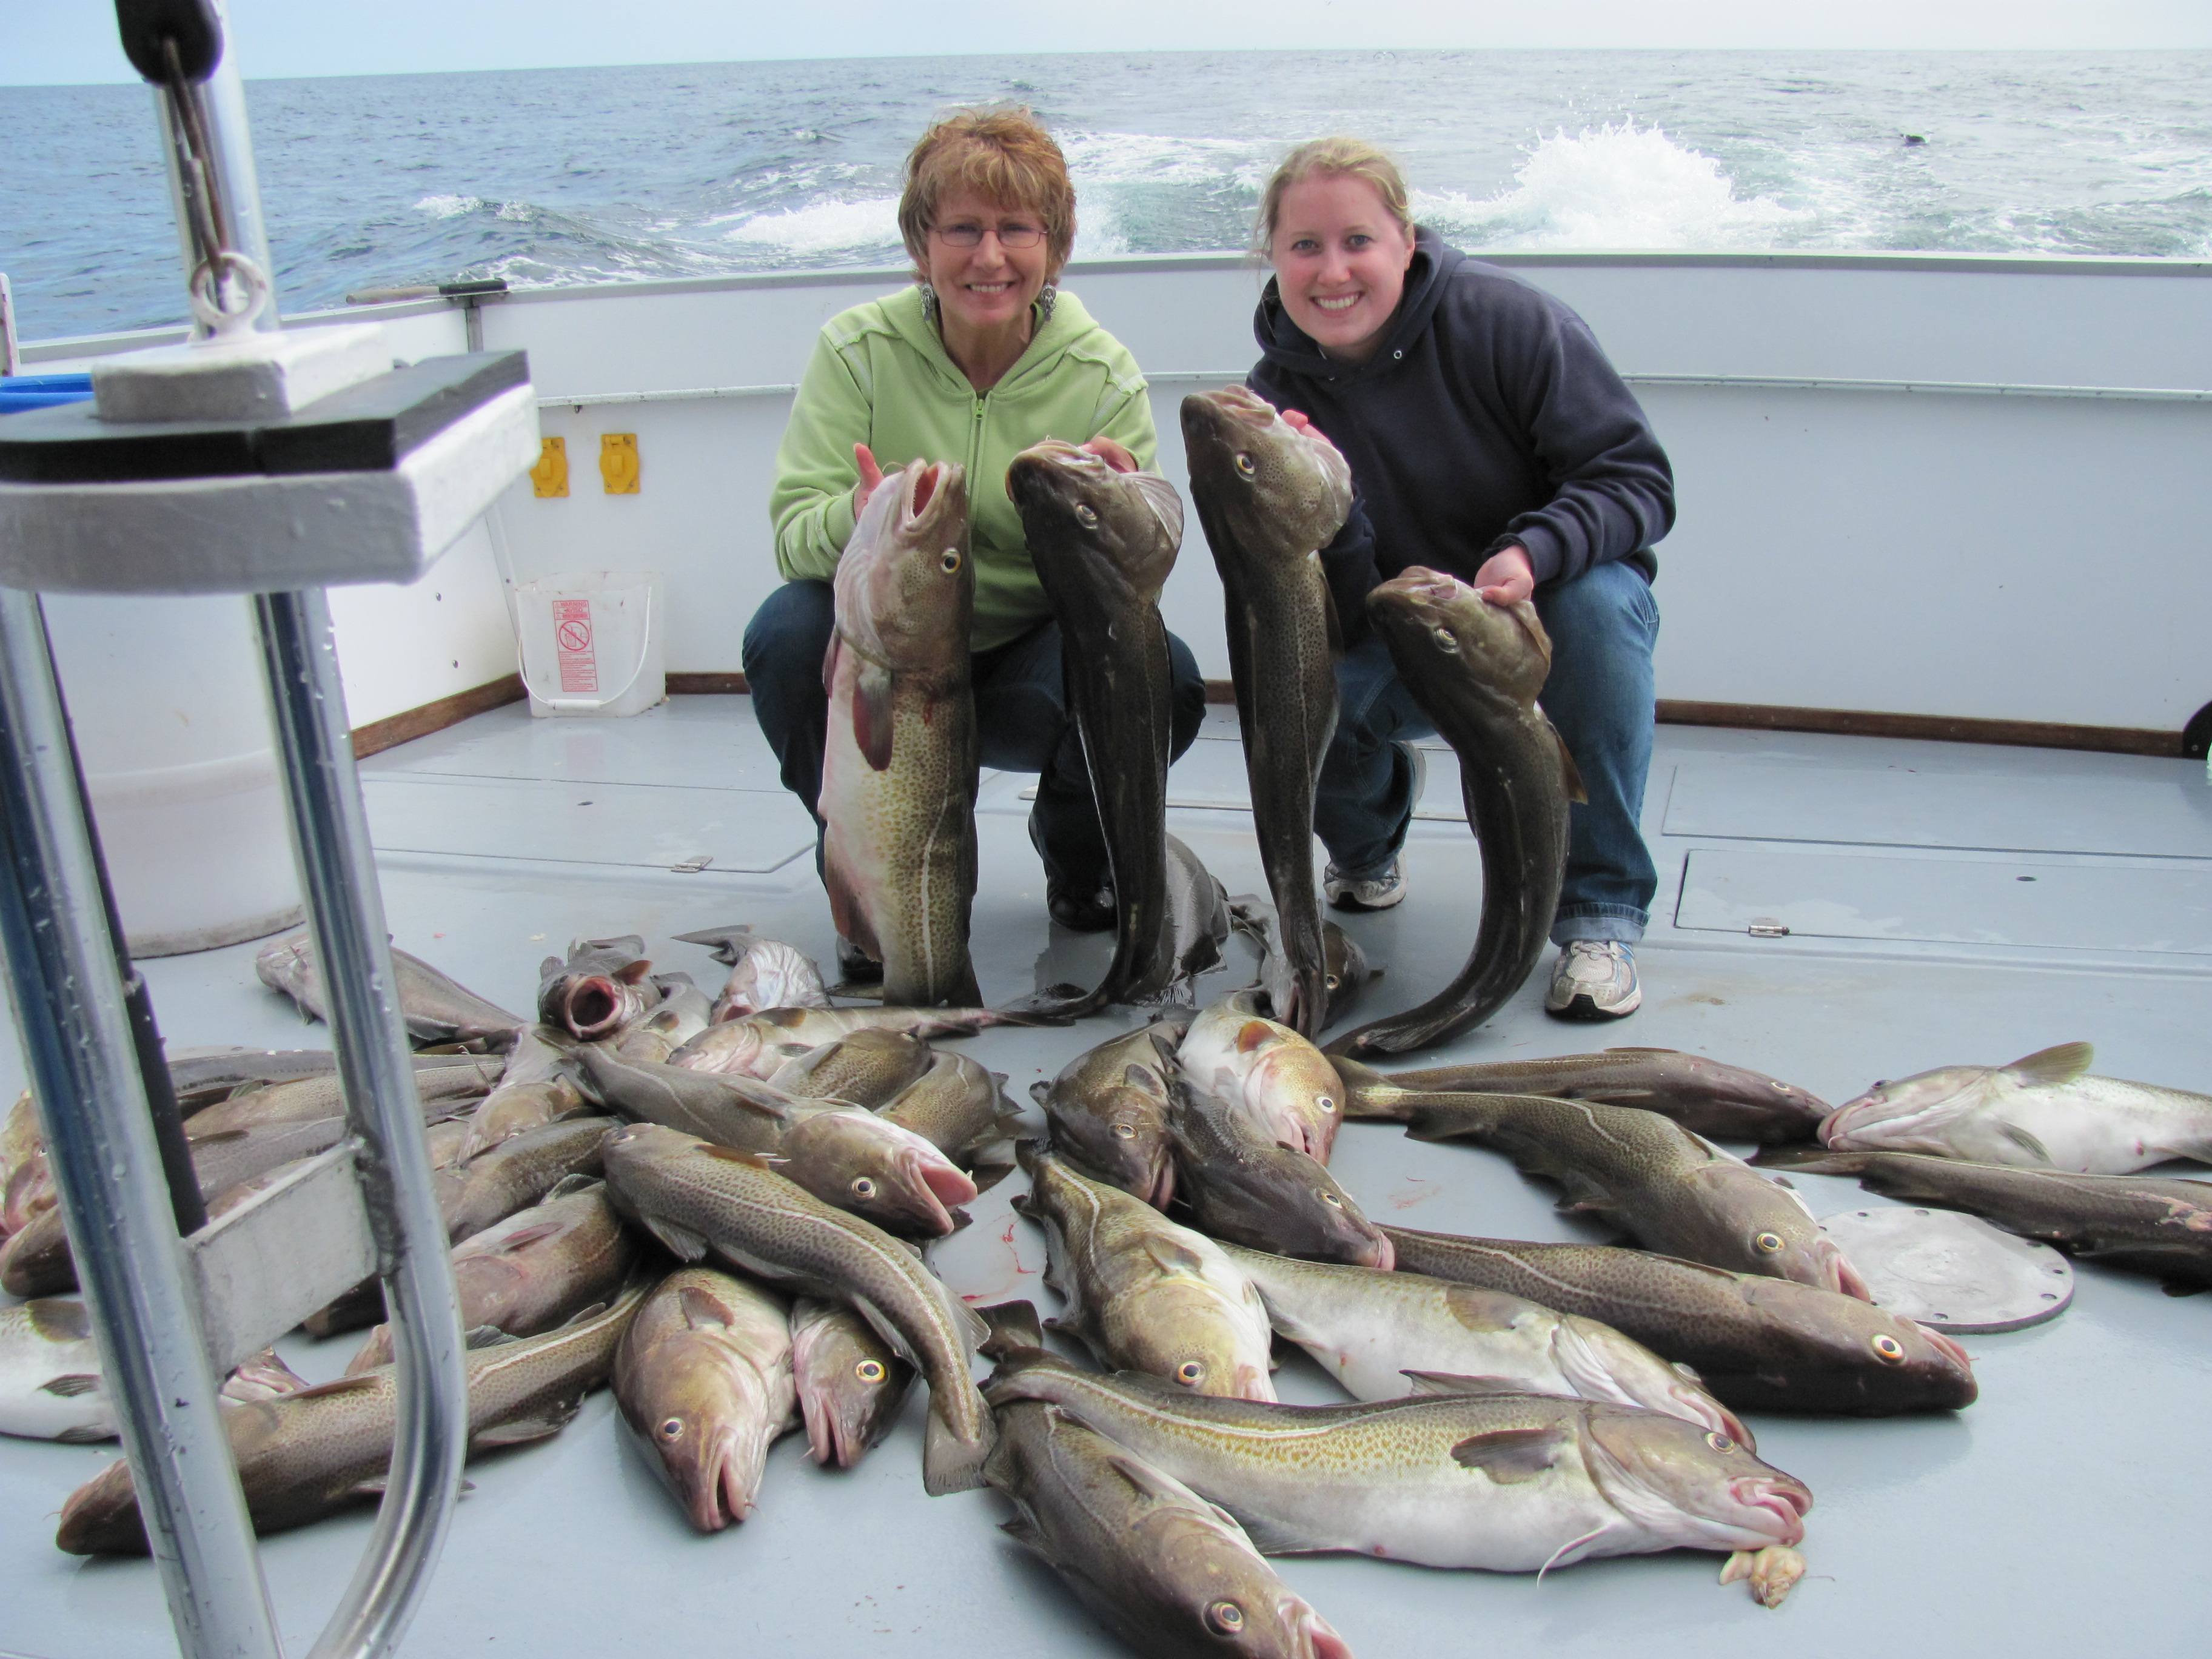 80 cod fish Caught aboard the Misty | CHARTER FISHING BOAT RI